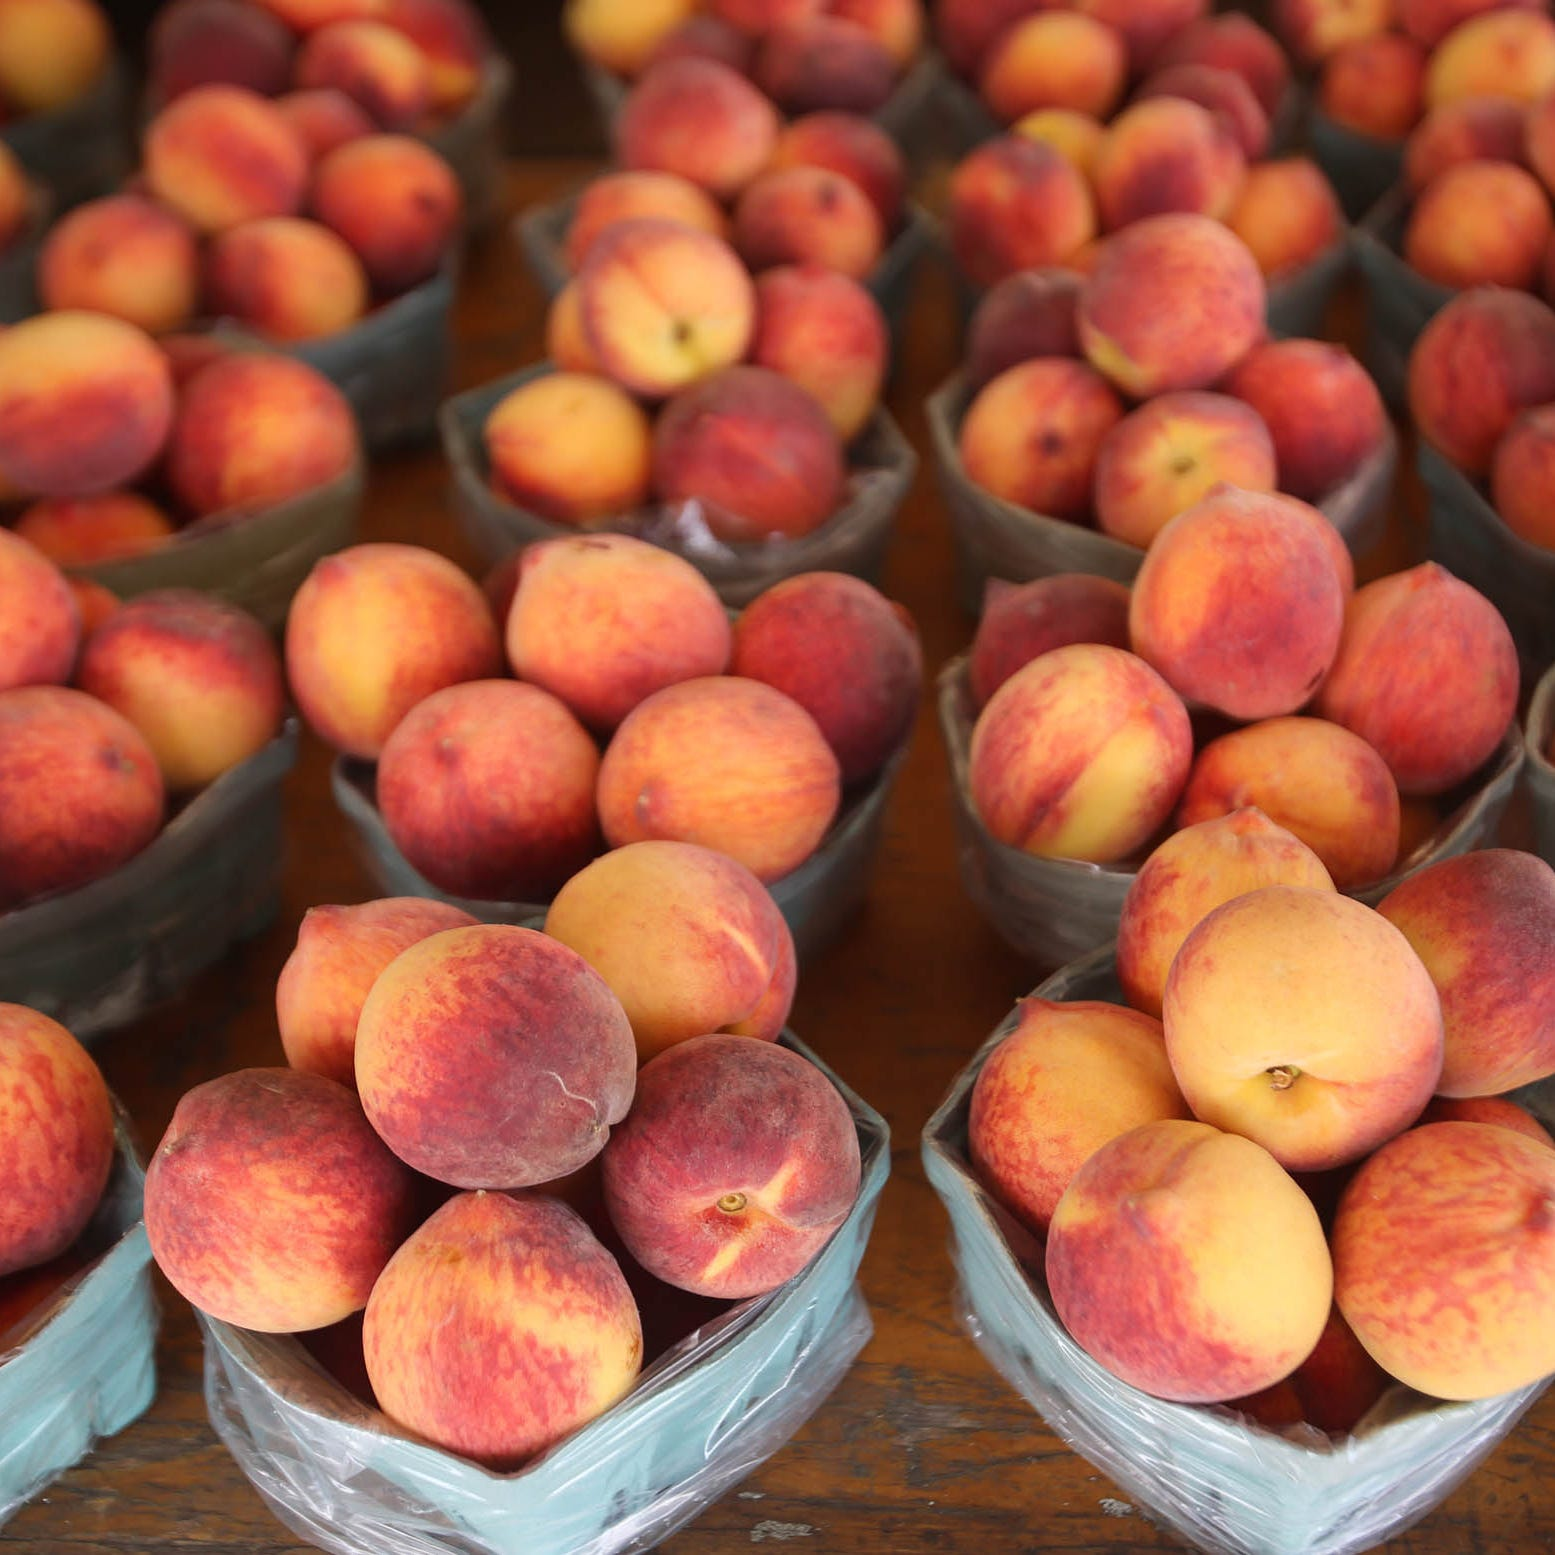 Summer dryness and heat have made Michigan peach crop especially sweet